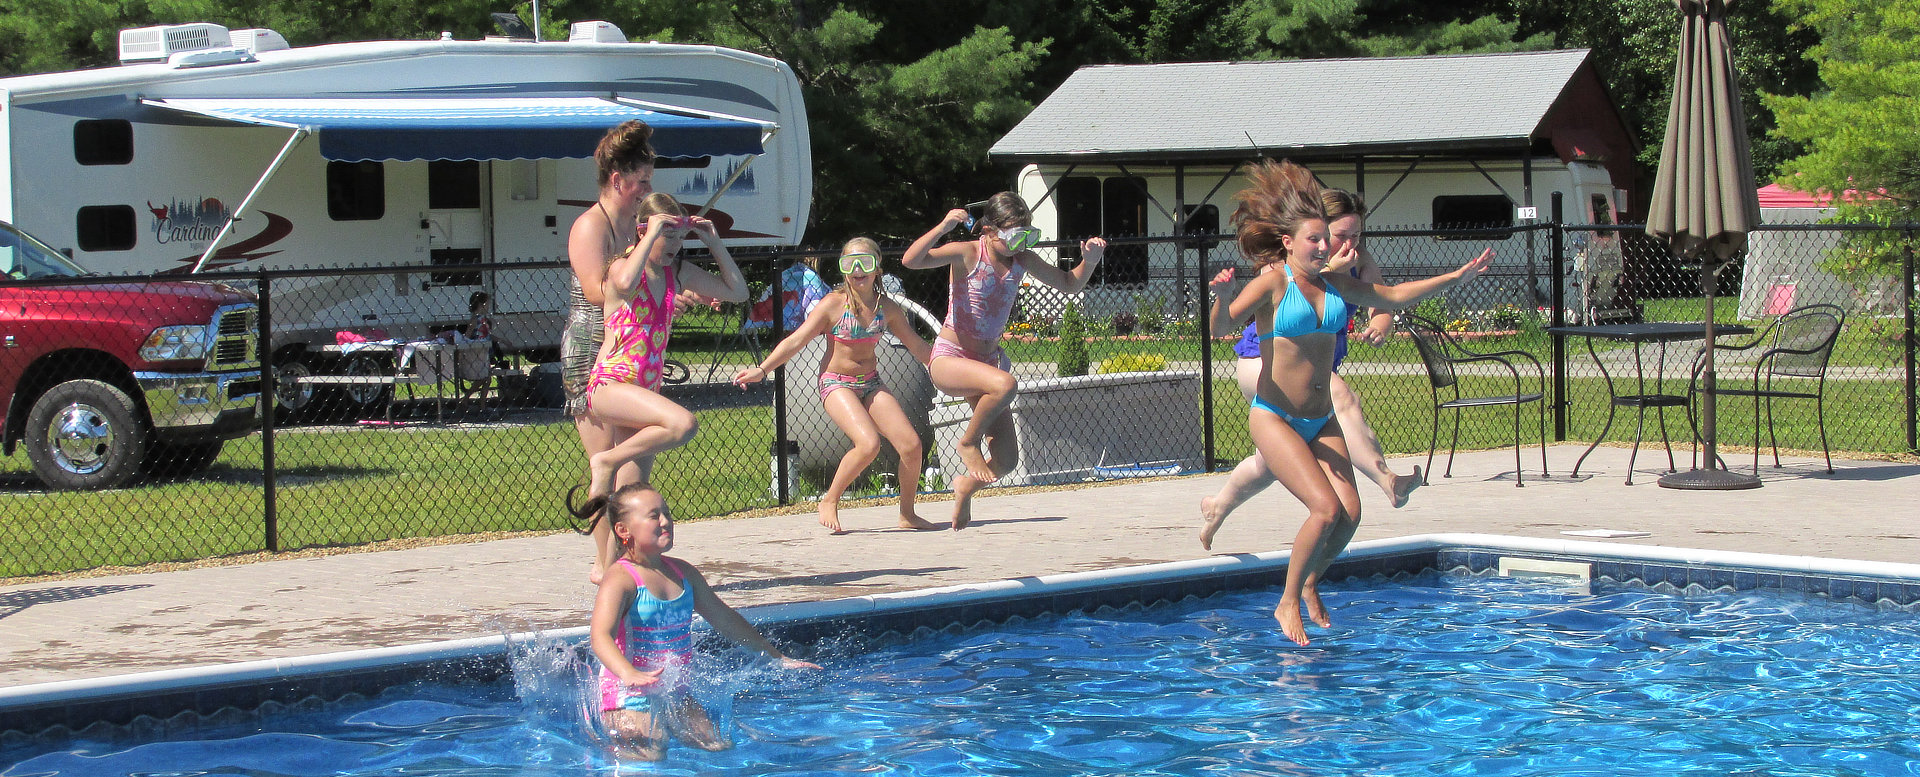 Girls jumping in the pool